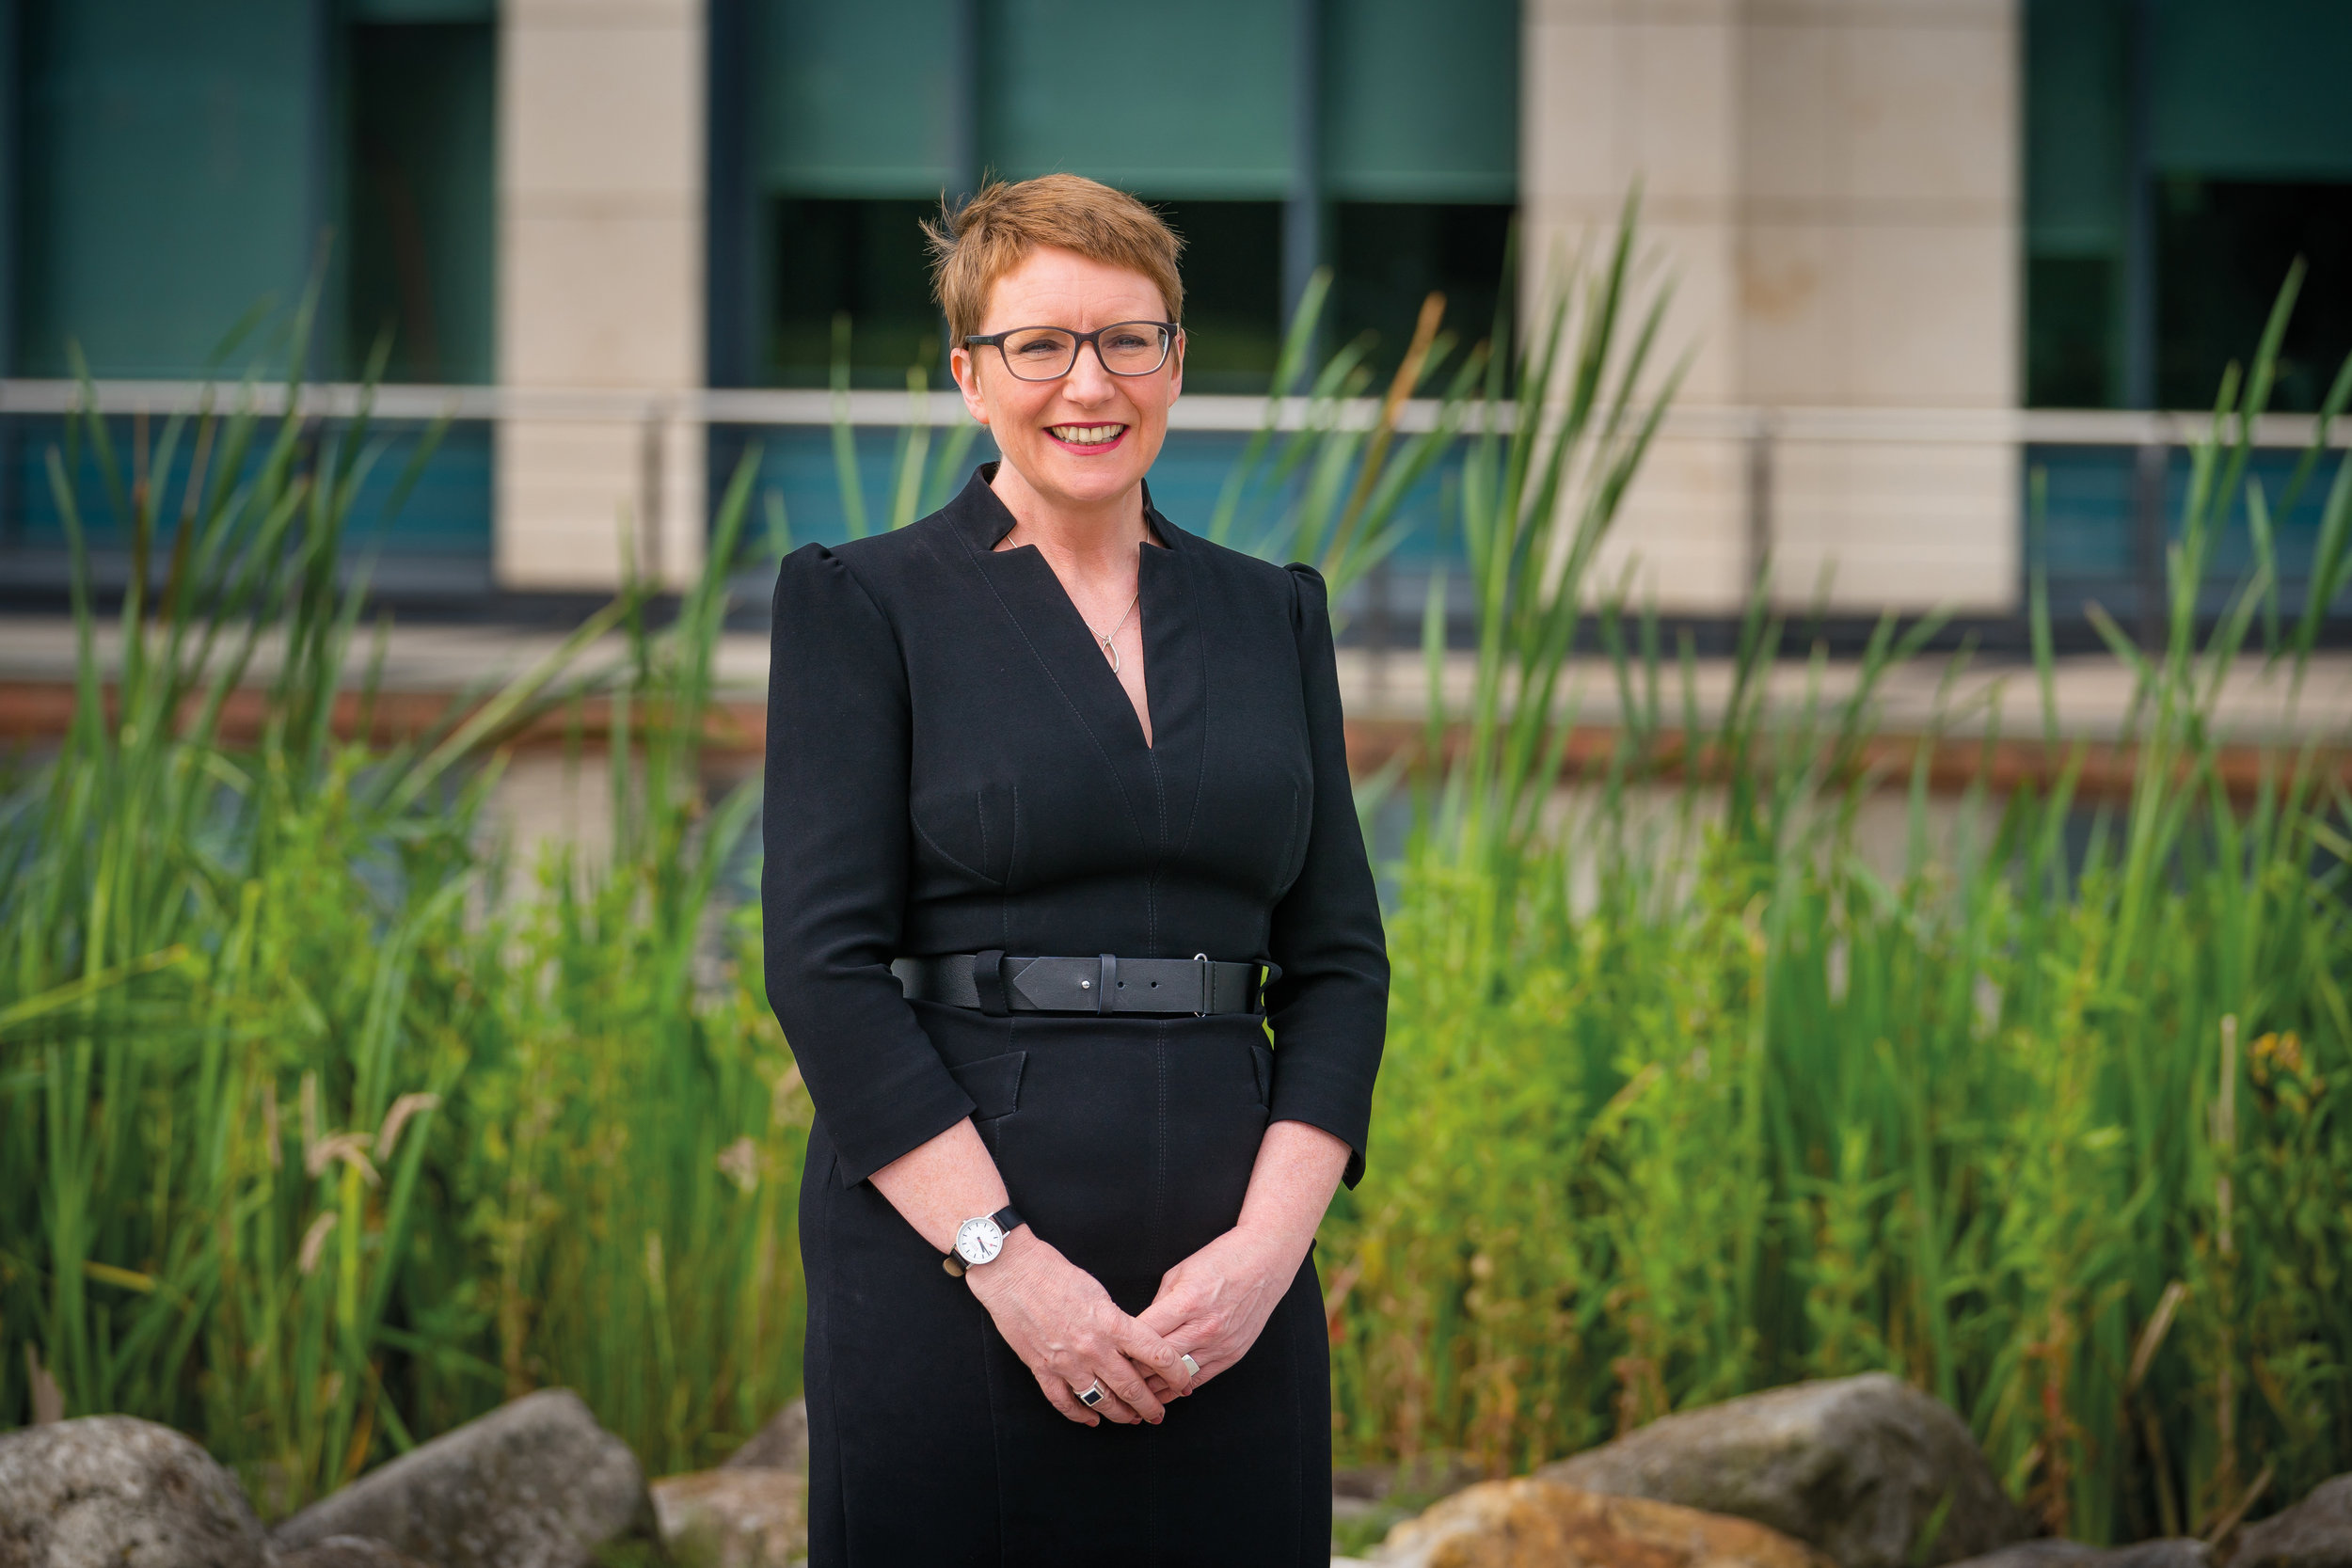 Jo Holden, Peel L&P's Sustainability Manager